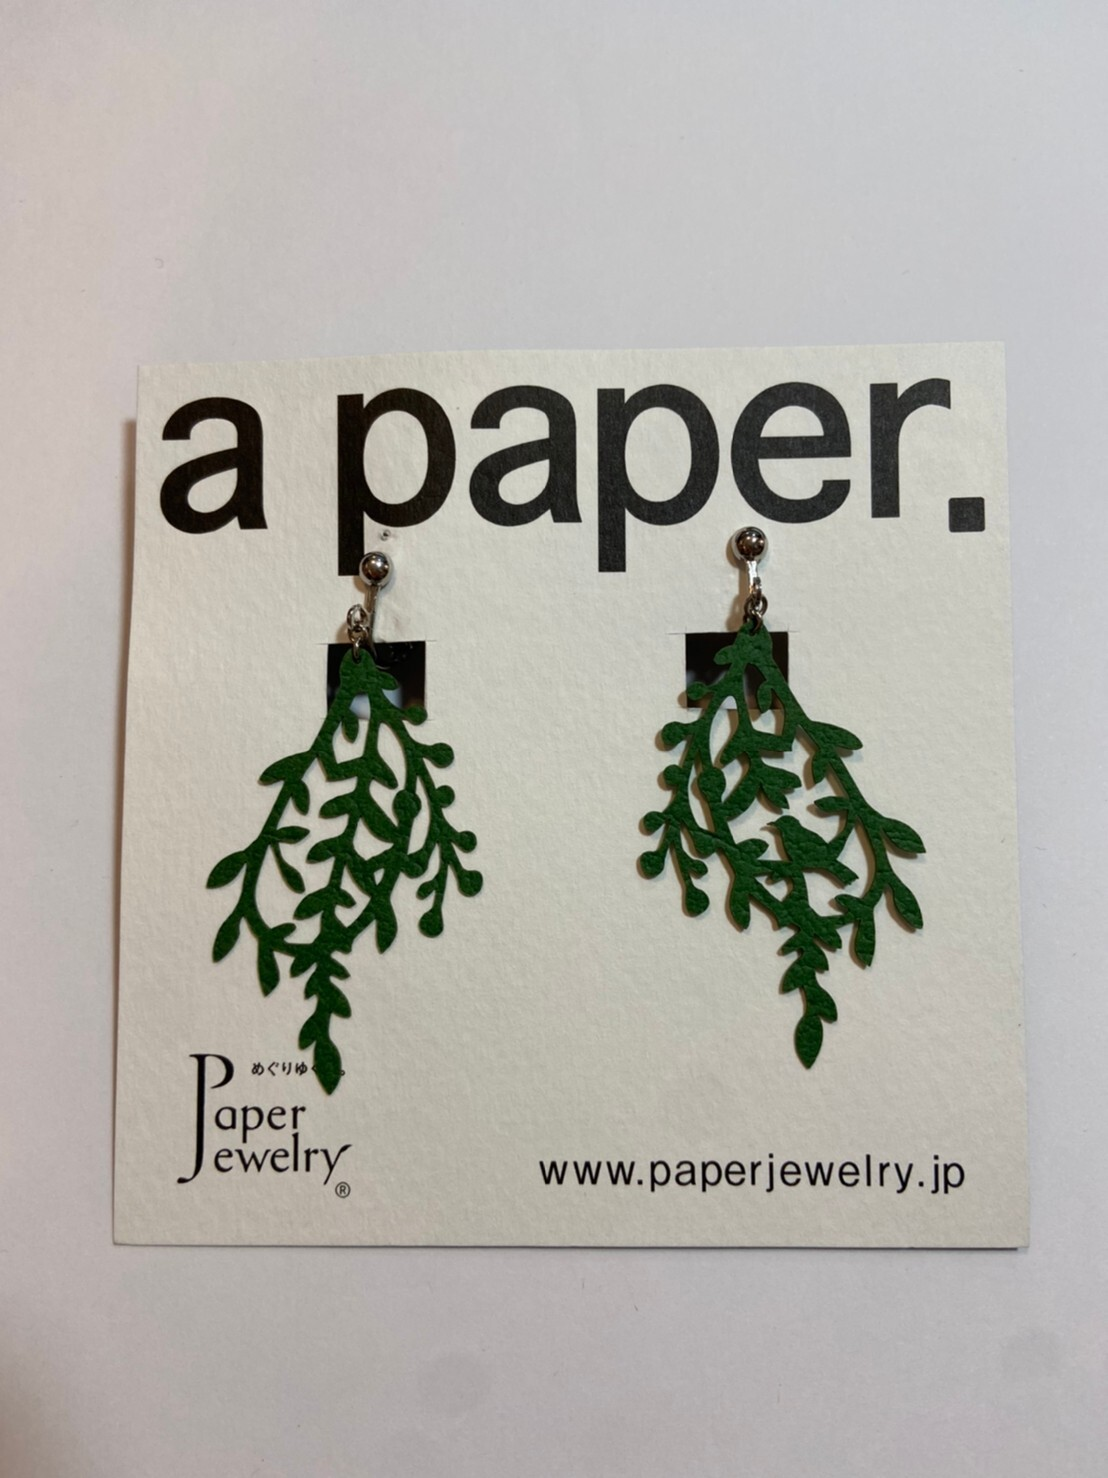 【Paper Jewely】ガーデン/イヤリング